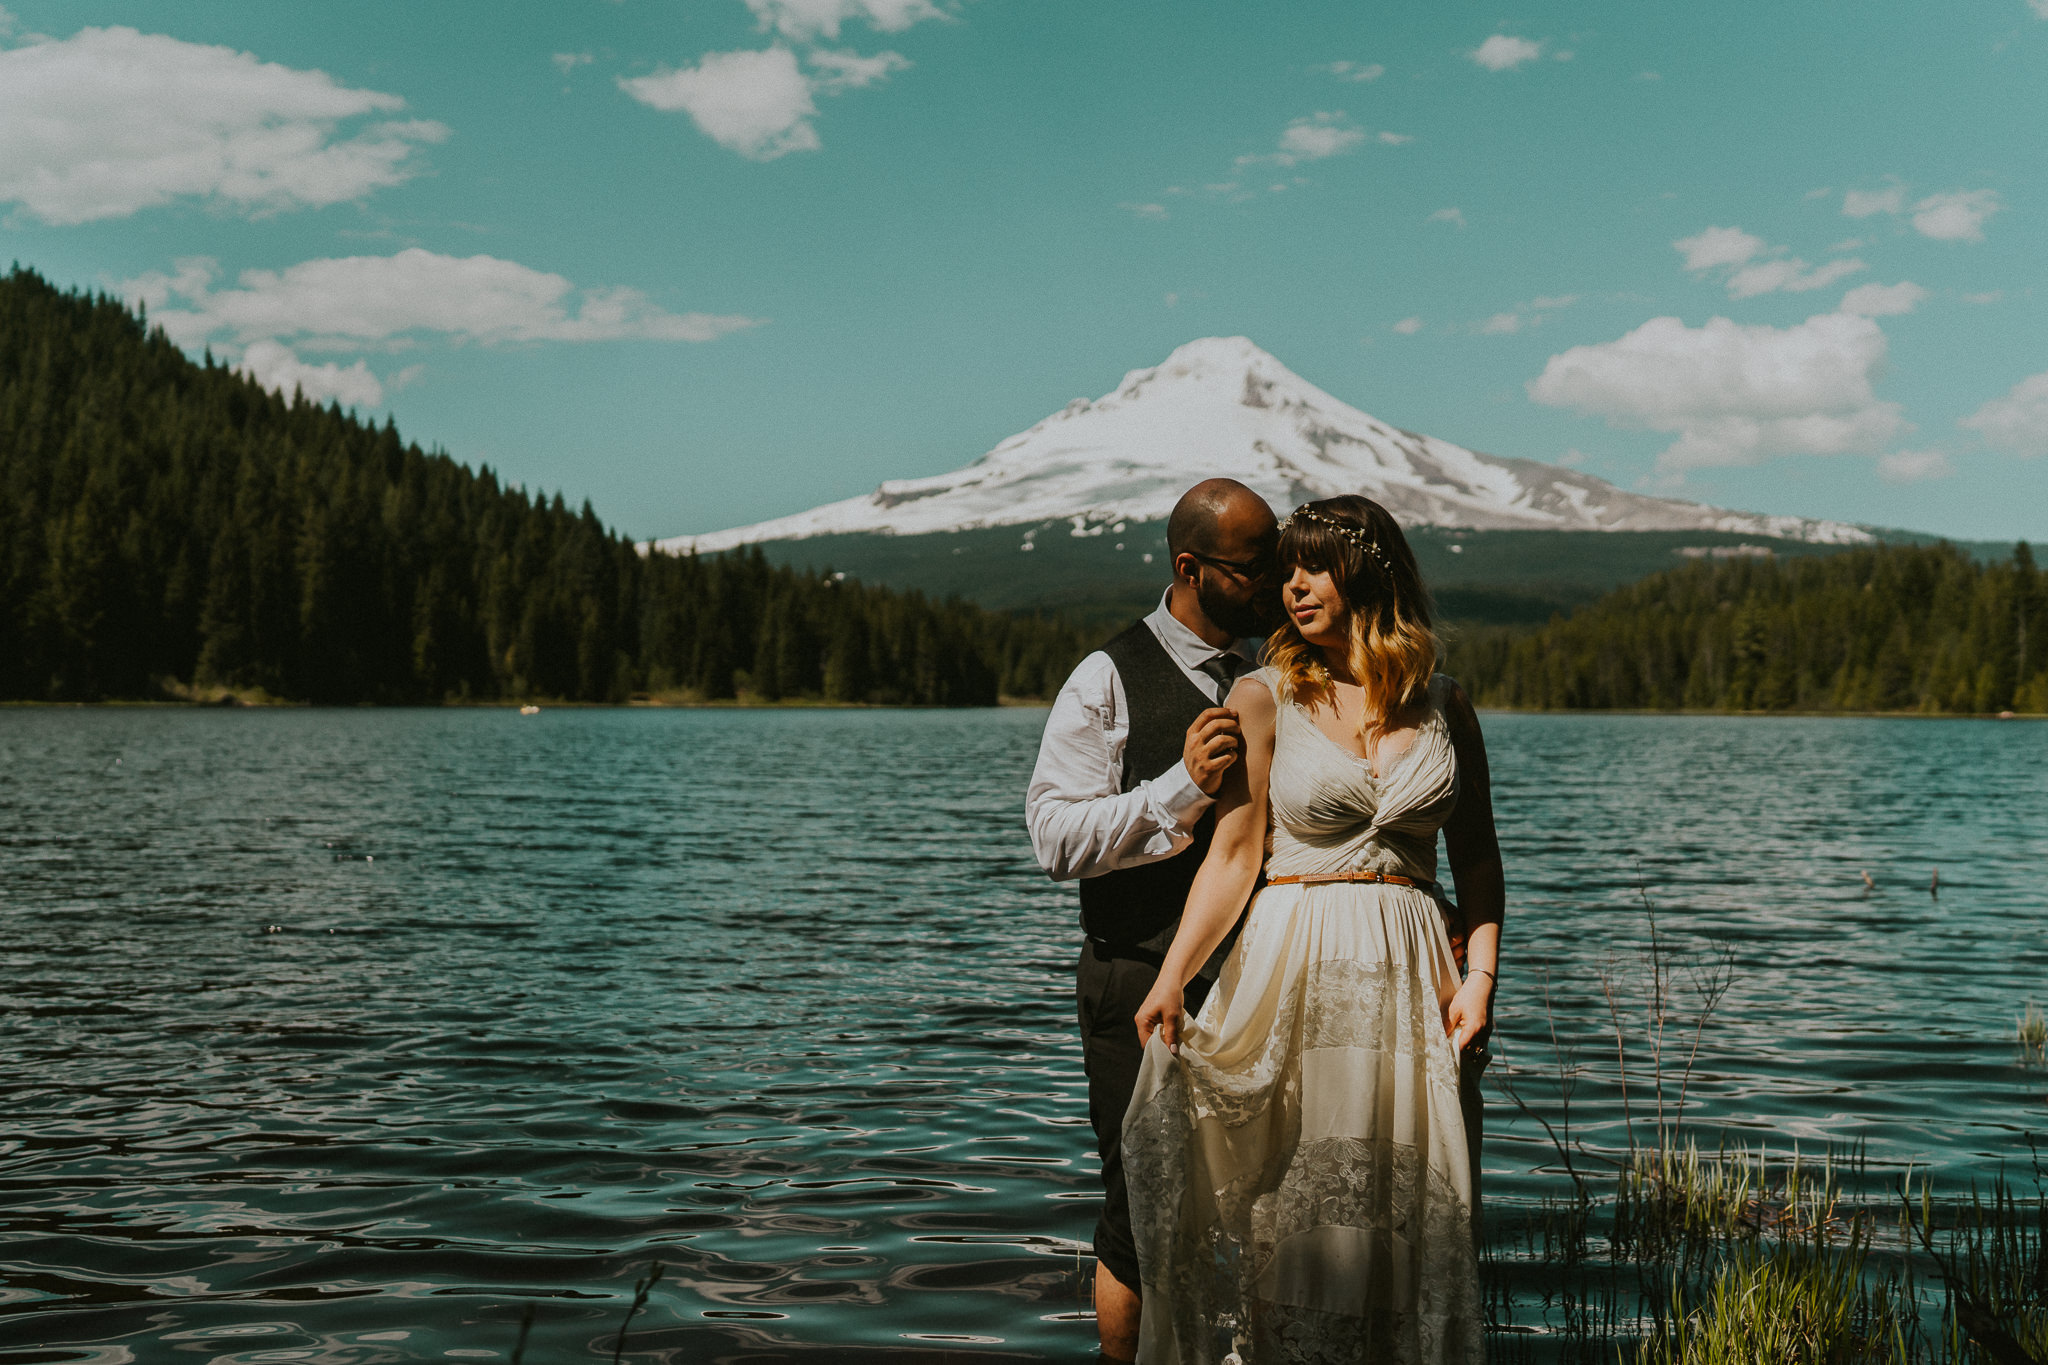 Intimate-Greenshoes-Wedding-Alfred-Tang-Photography